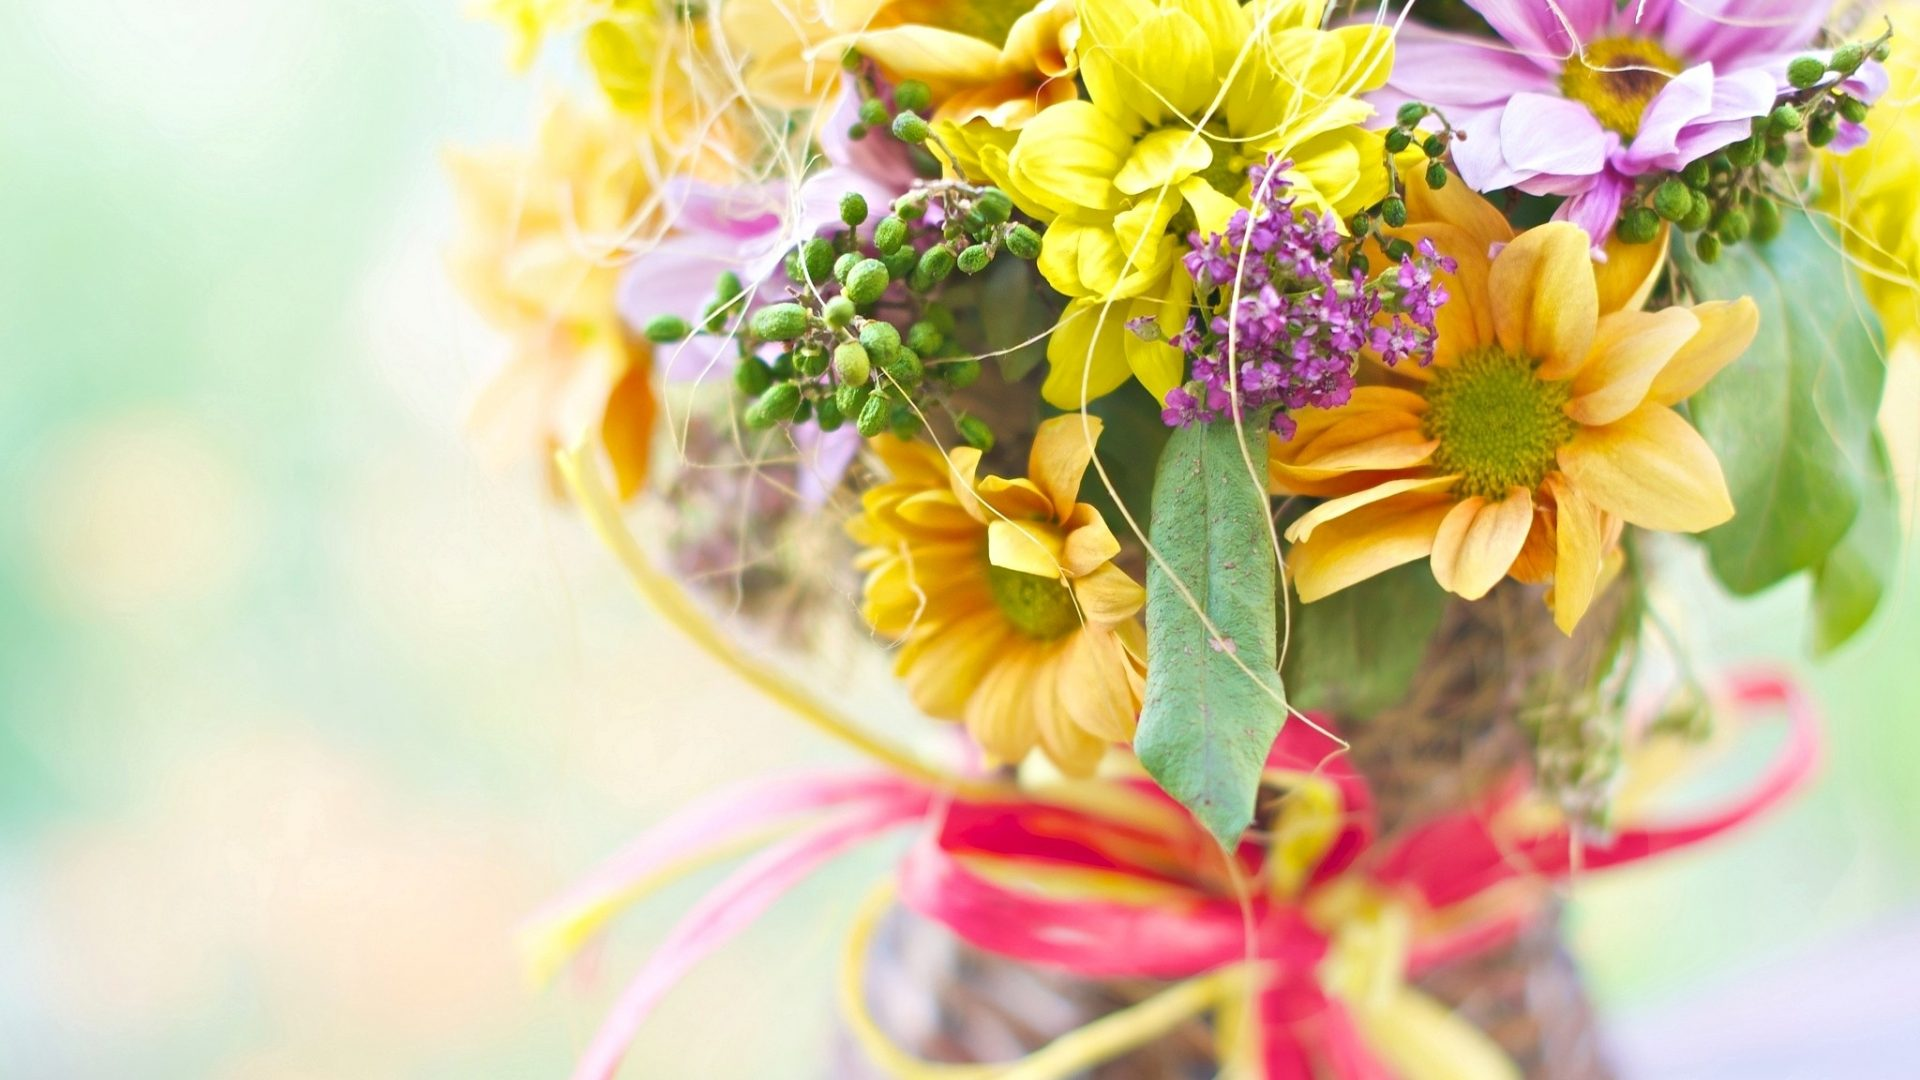 bouquet daisy colorful petals beautiful flower hd wallpaper widescreen